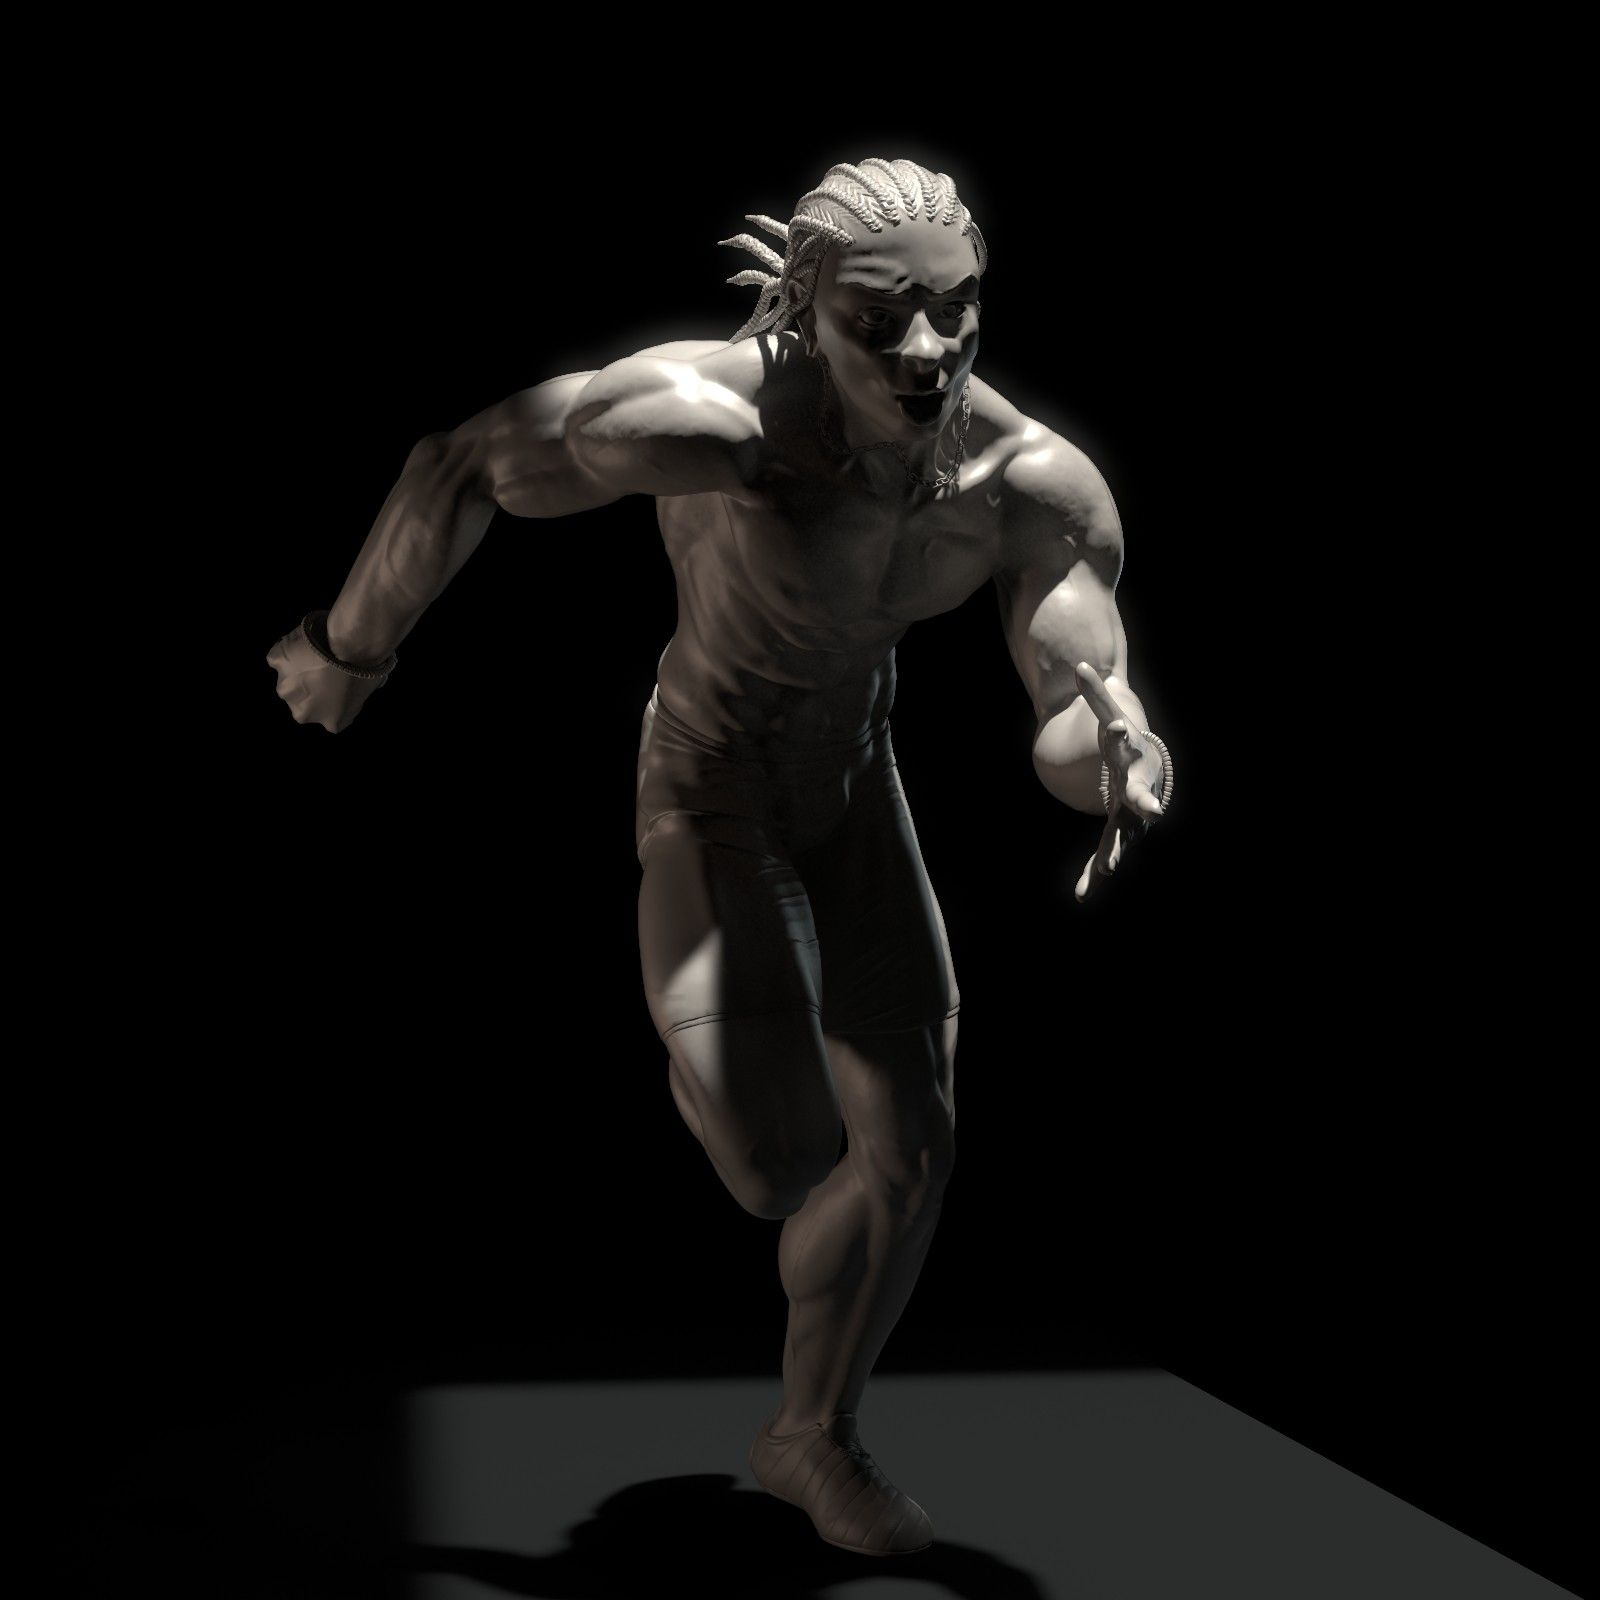 I decided to sculpt a model that I drew the past week in a session of human figure, I tried to stylize without losing anatomy, cheers! :)